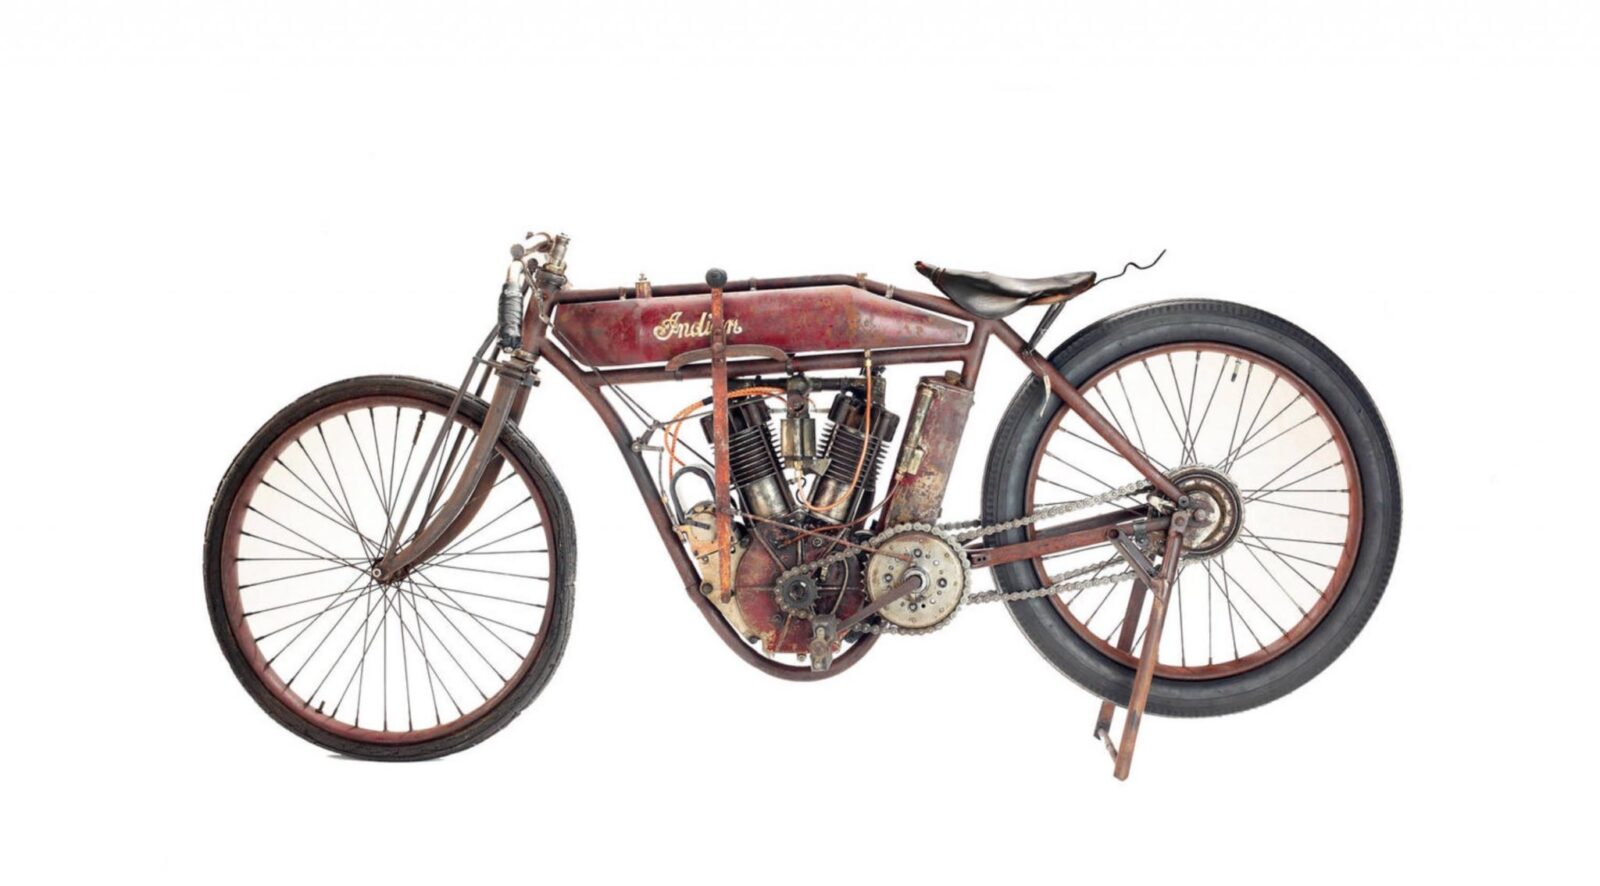 Indian Board Track Motorcycle 1 1600x886 - 1912 Indian Board Track Racer